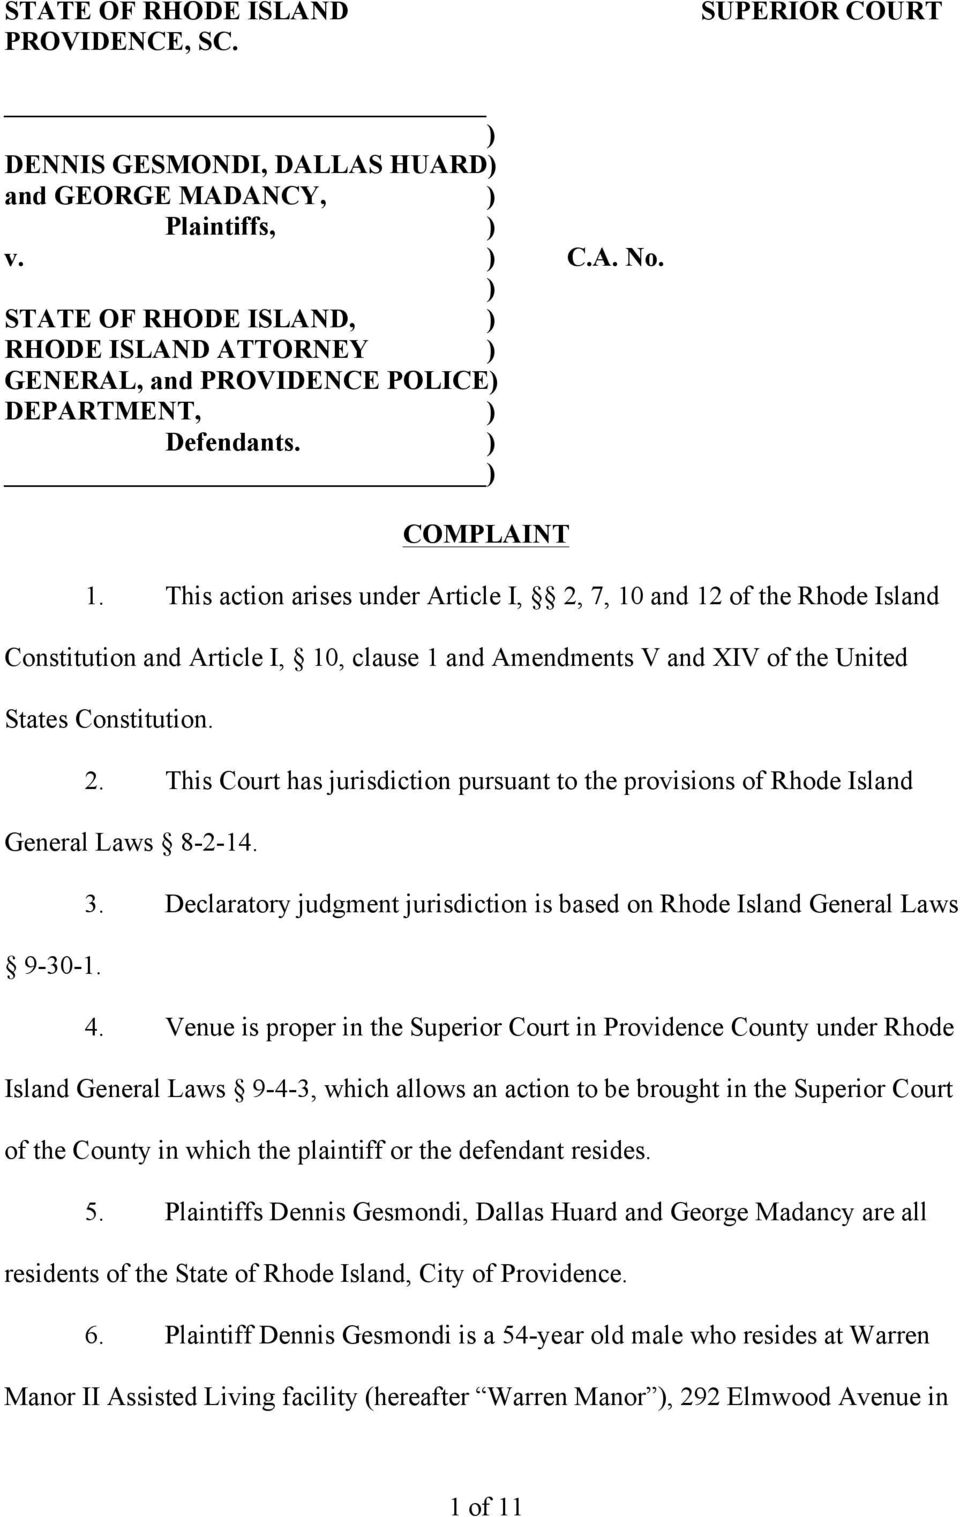 This action arises under Article I, 2, 7, 10 and 12 of the Rhode Island Constitution and Article I, 10, clause 1 and Amendments V and XIV of the United States Constitution. 2. This Court has jurisdiction pursuant to the provisions of Rhode Island General Laws 8-2-14.